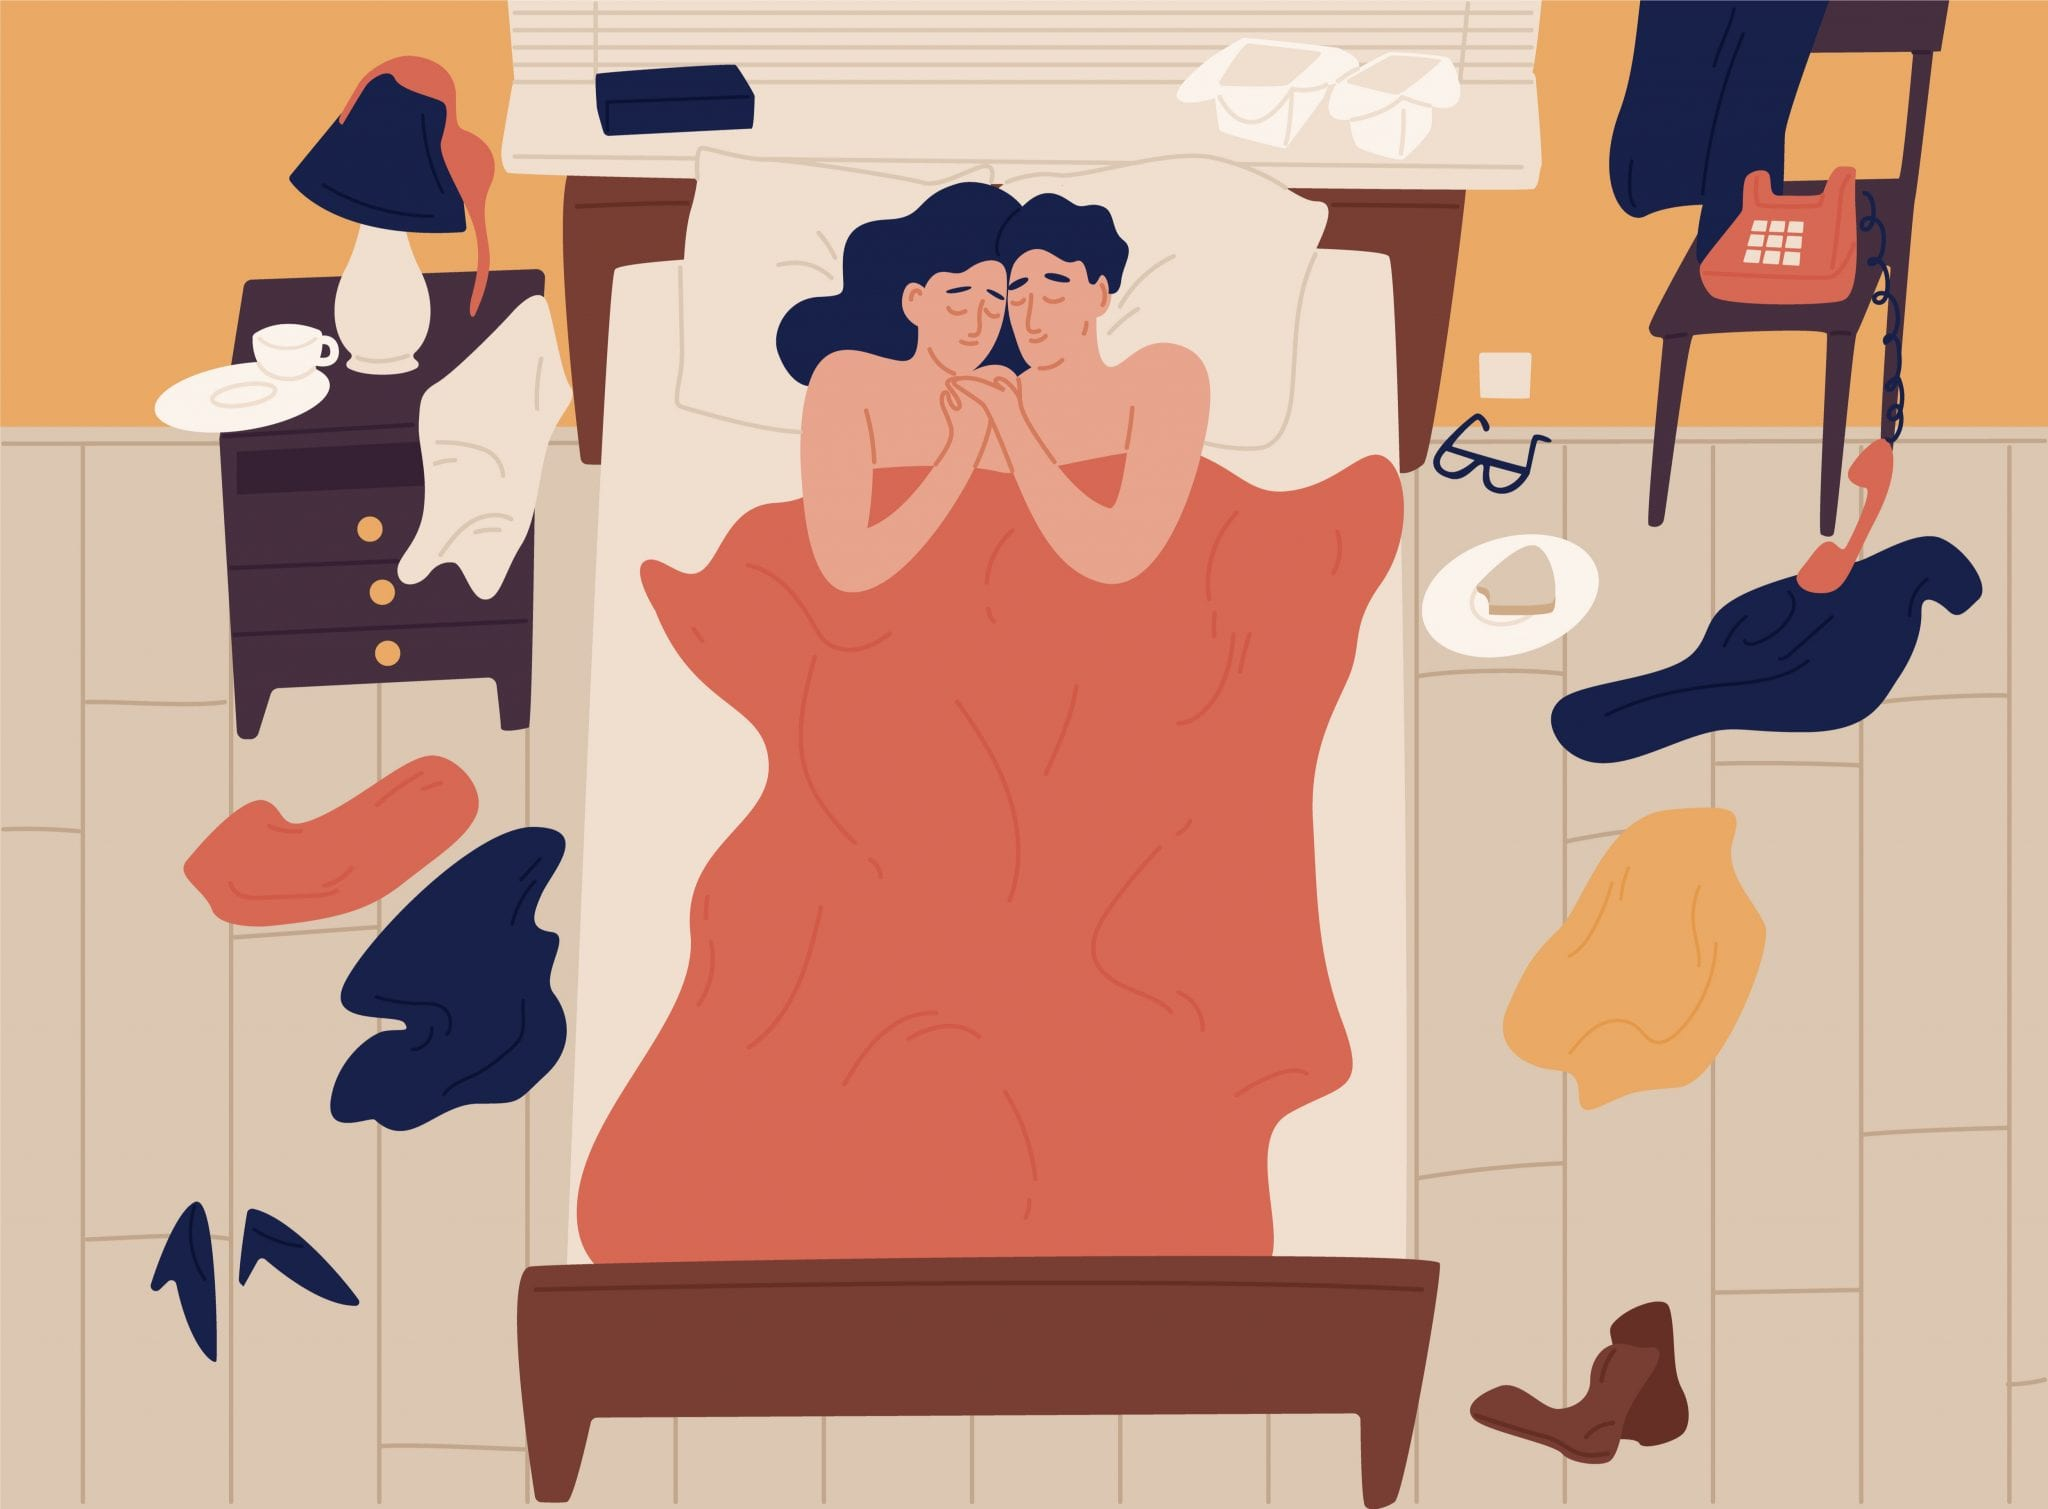 Couple Lying in Bed Together Illustration